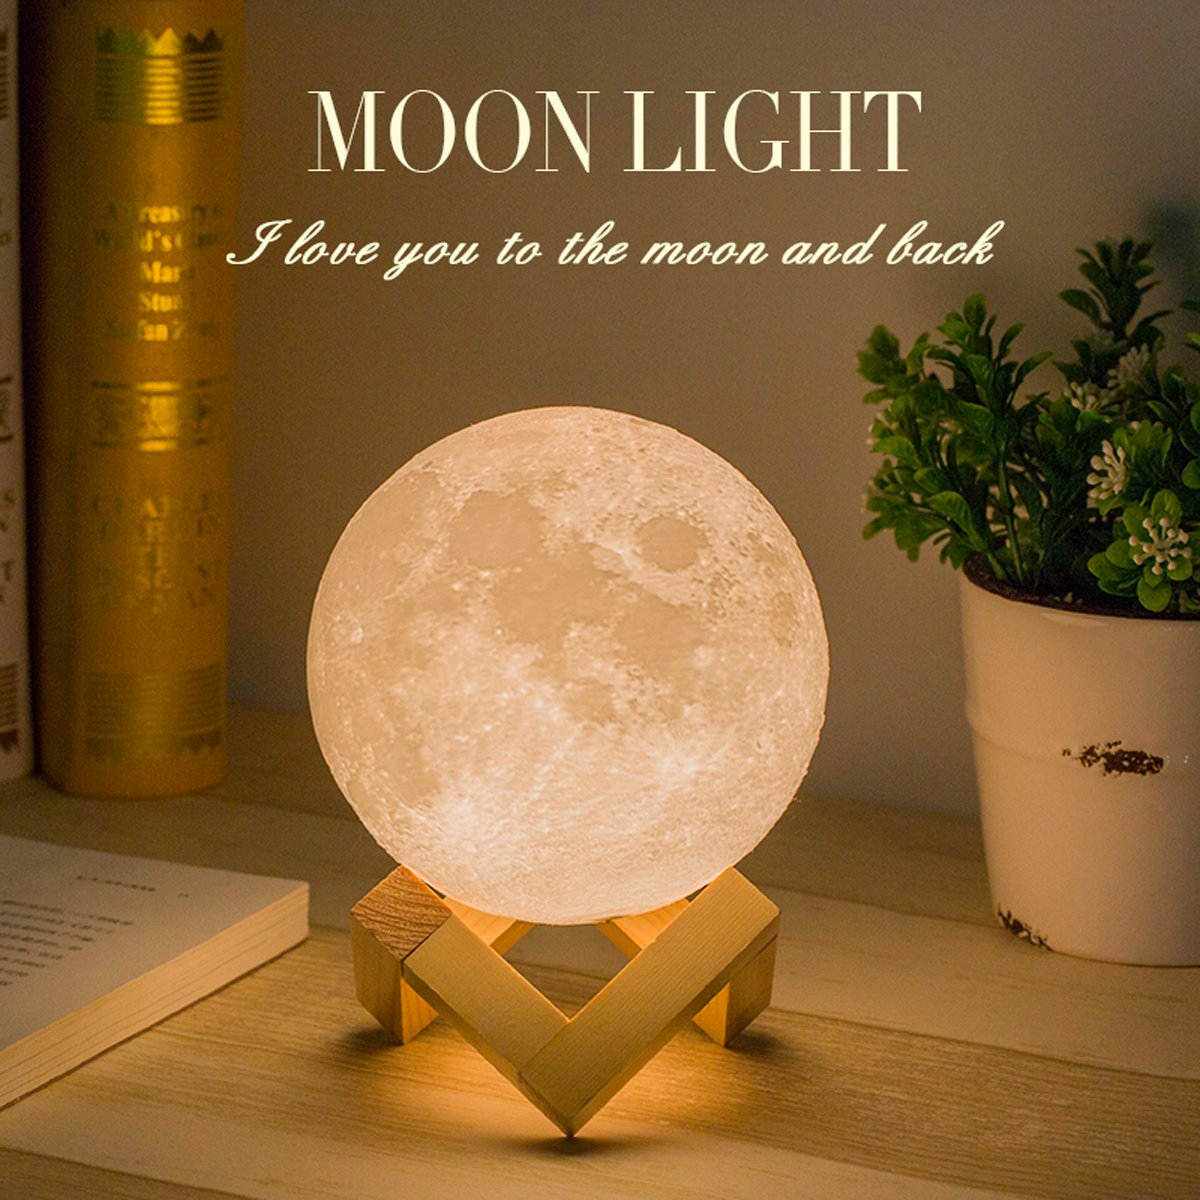 Mydethun Moon Lamp Moon Light Night Light for Kids Gift for Women USB Charging and Touch Control Brightness 3D Printed Warm and Cool White Lunar Lamp (7.1IN with Moon Light with Wood Base) mydethun.Co ML-035